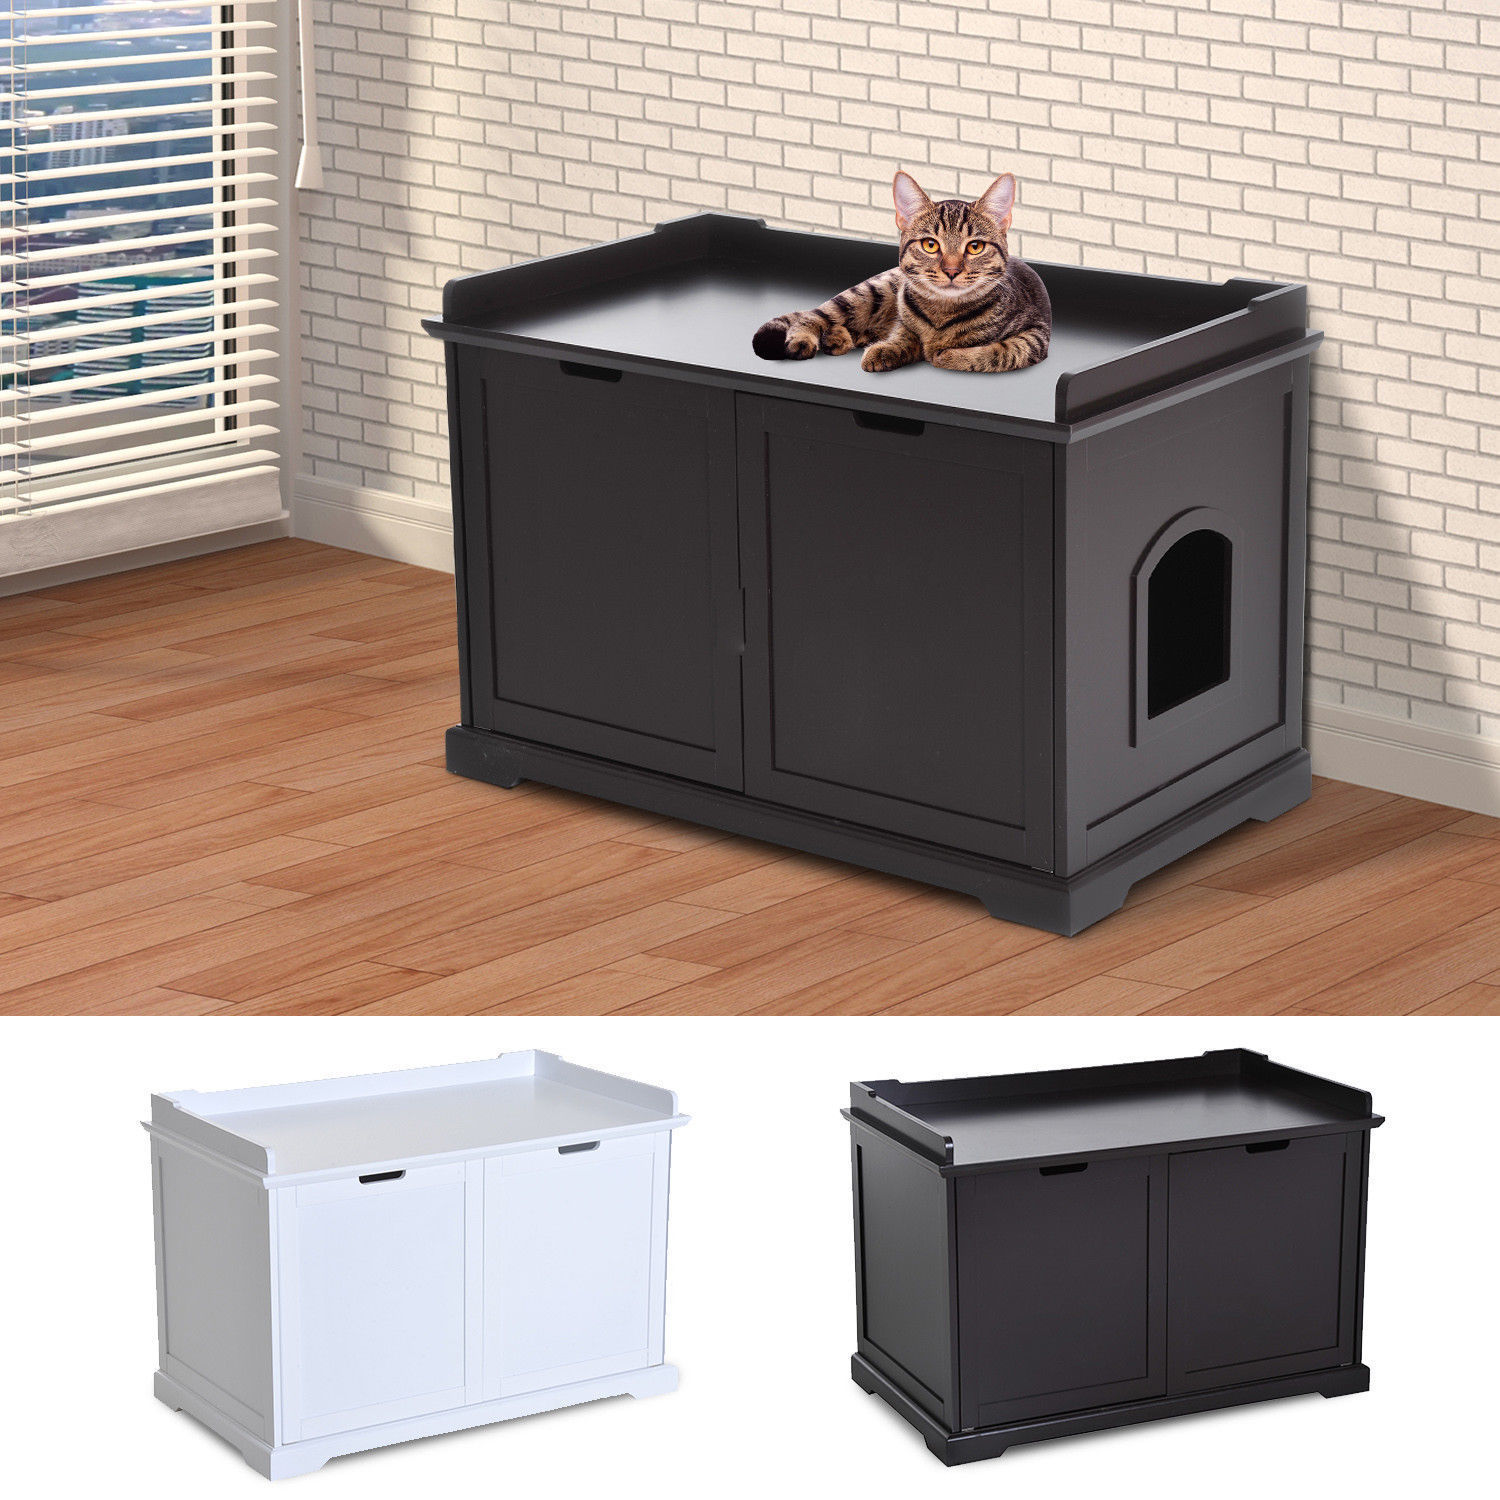 Hilarious Hidden Kitty Litter Box Bench Enclosure Hall End Table Cat Cabinet Or Espresso Hidden Kitty Litter Box Bench Enclosure Hall End Table Cat Cabinet Litter Box Cabinet Ideas Catteux Litter Box houzz-03 Litter Box Cabinet